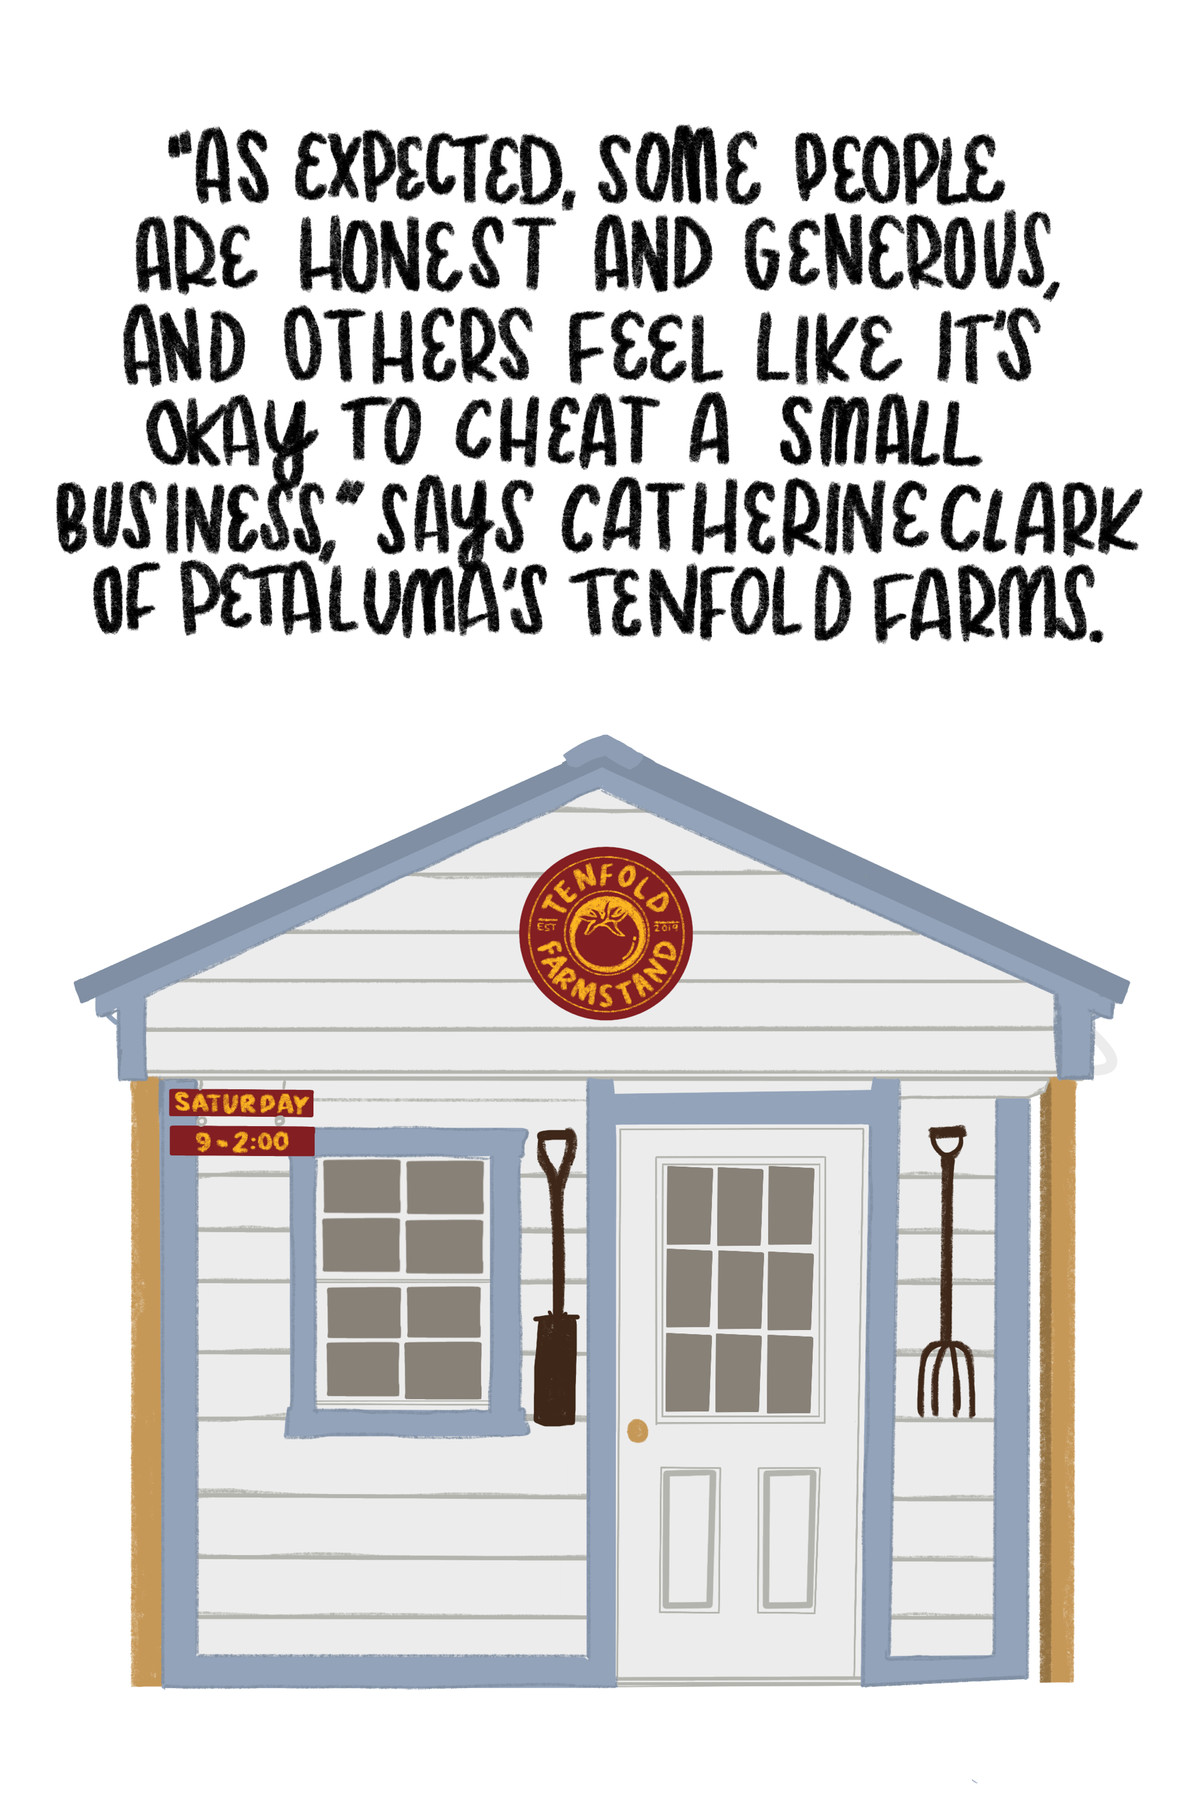 """""""As expected, some people are honest and generous. And others feel like it's ok to cheat a small business,"""" says Catherine Clark of Petaluma's Tenfold Farms."""" [Below the quote is an illustration of the farmstand.]"""